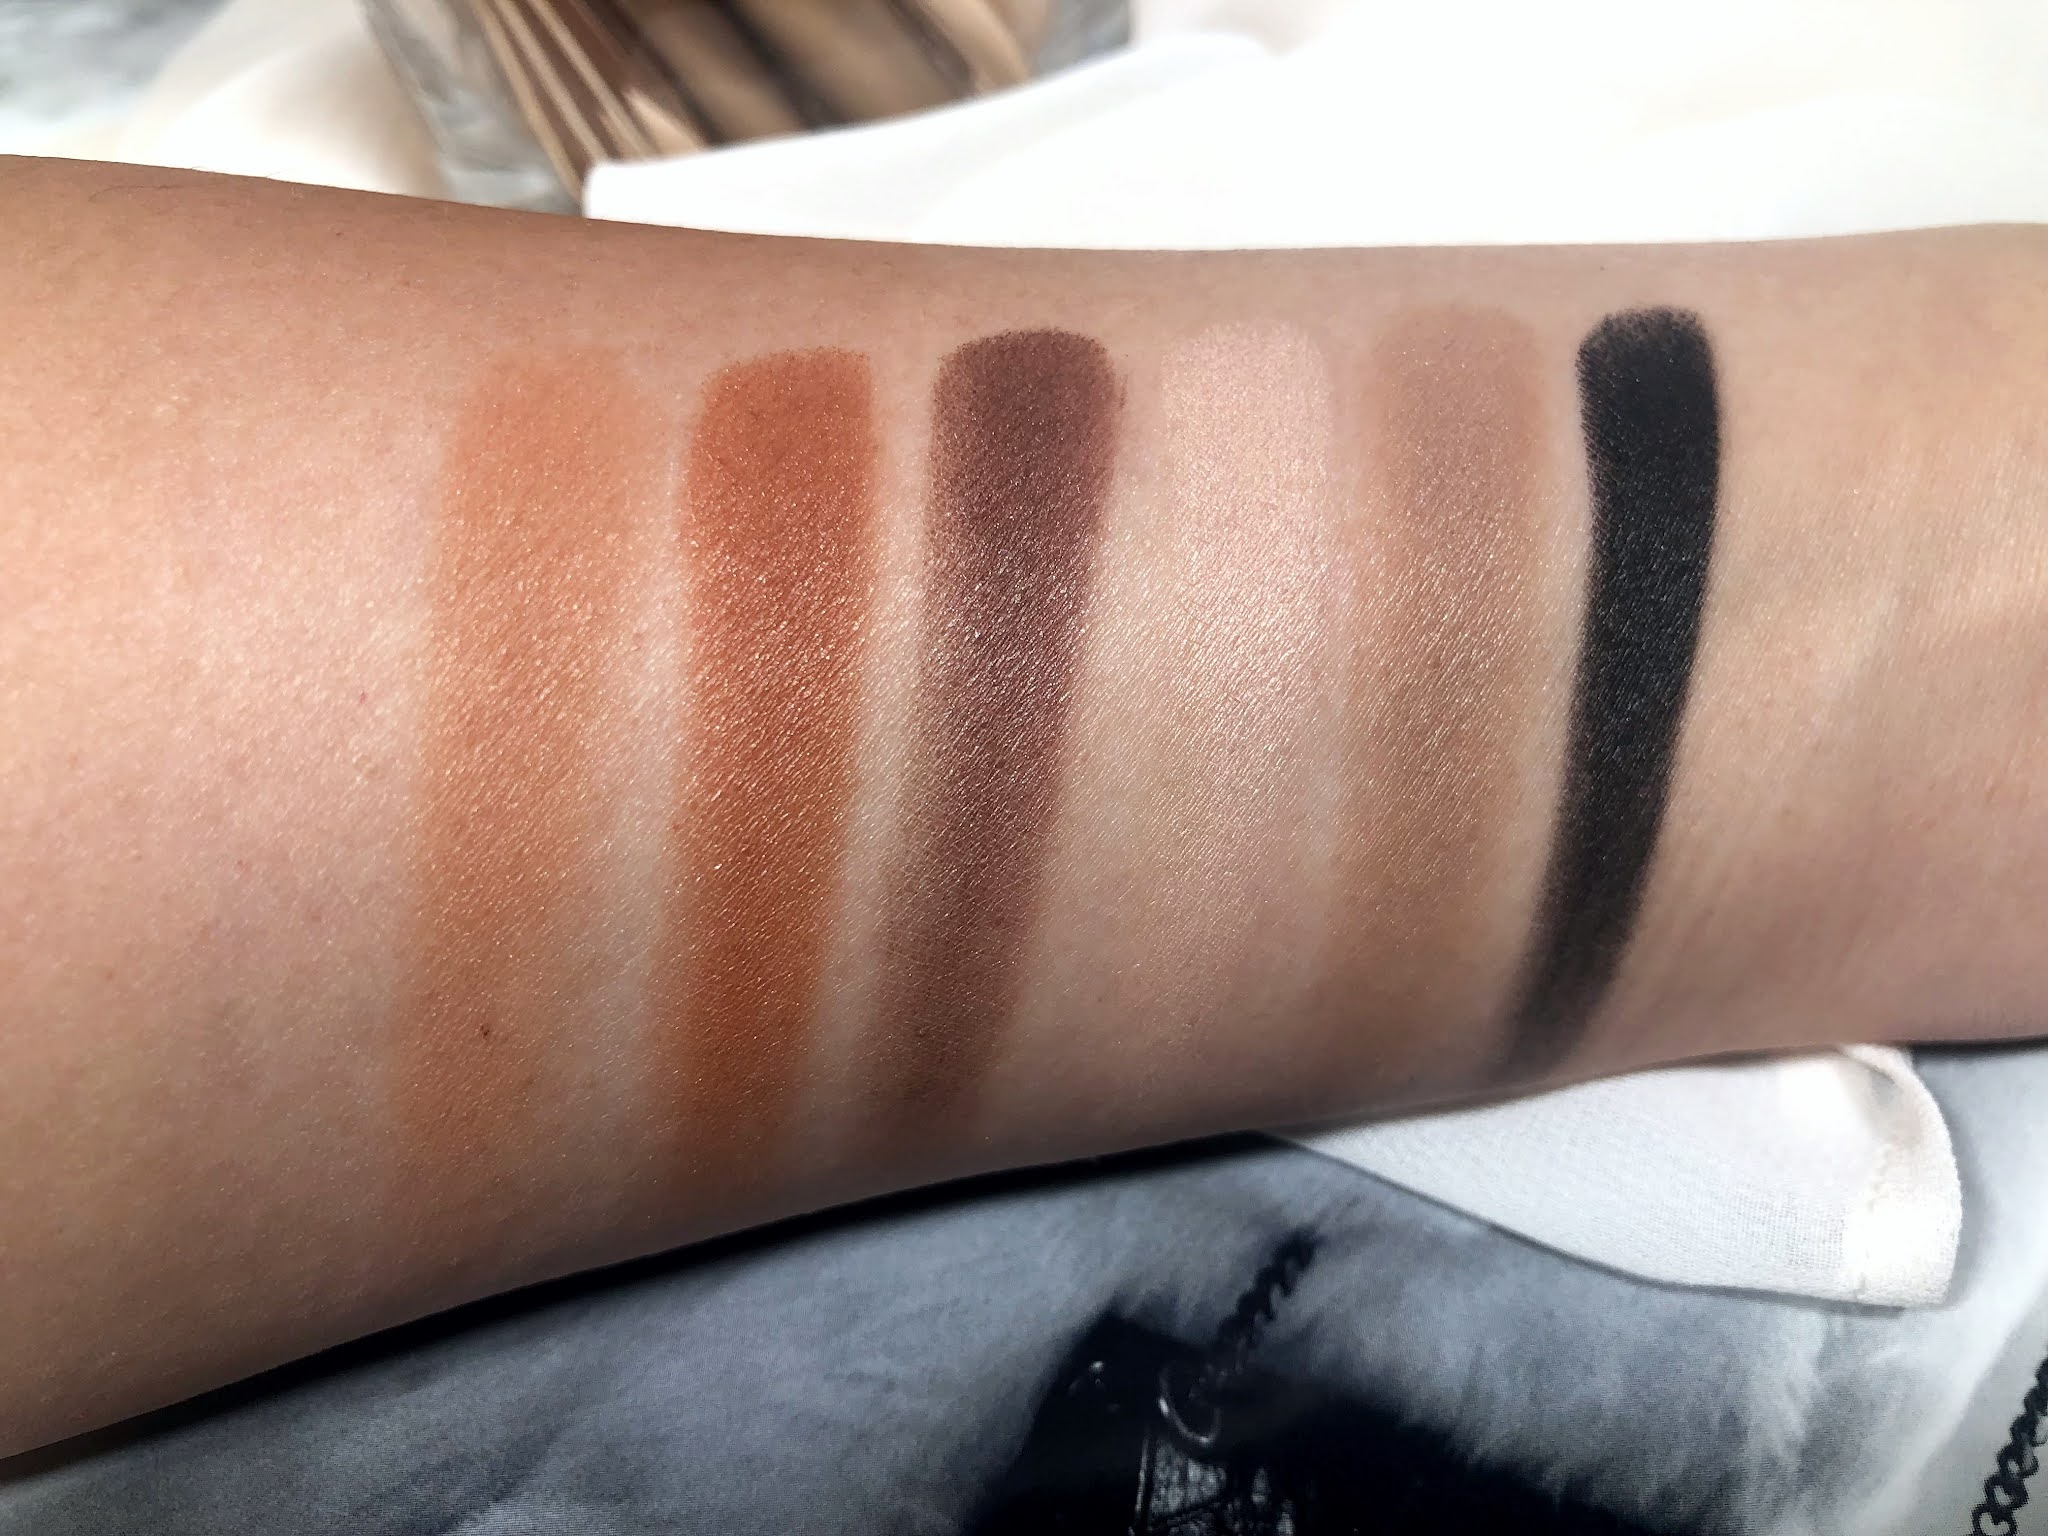 Charlotte Tilbury Super Nudes Easy Eyeshadow Palette Review and Swatches